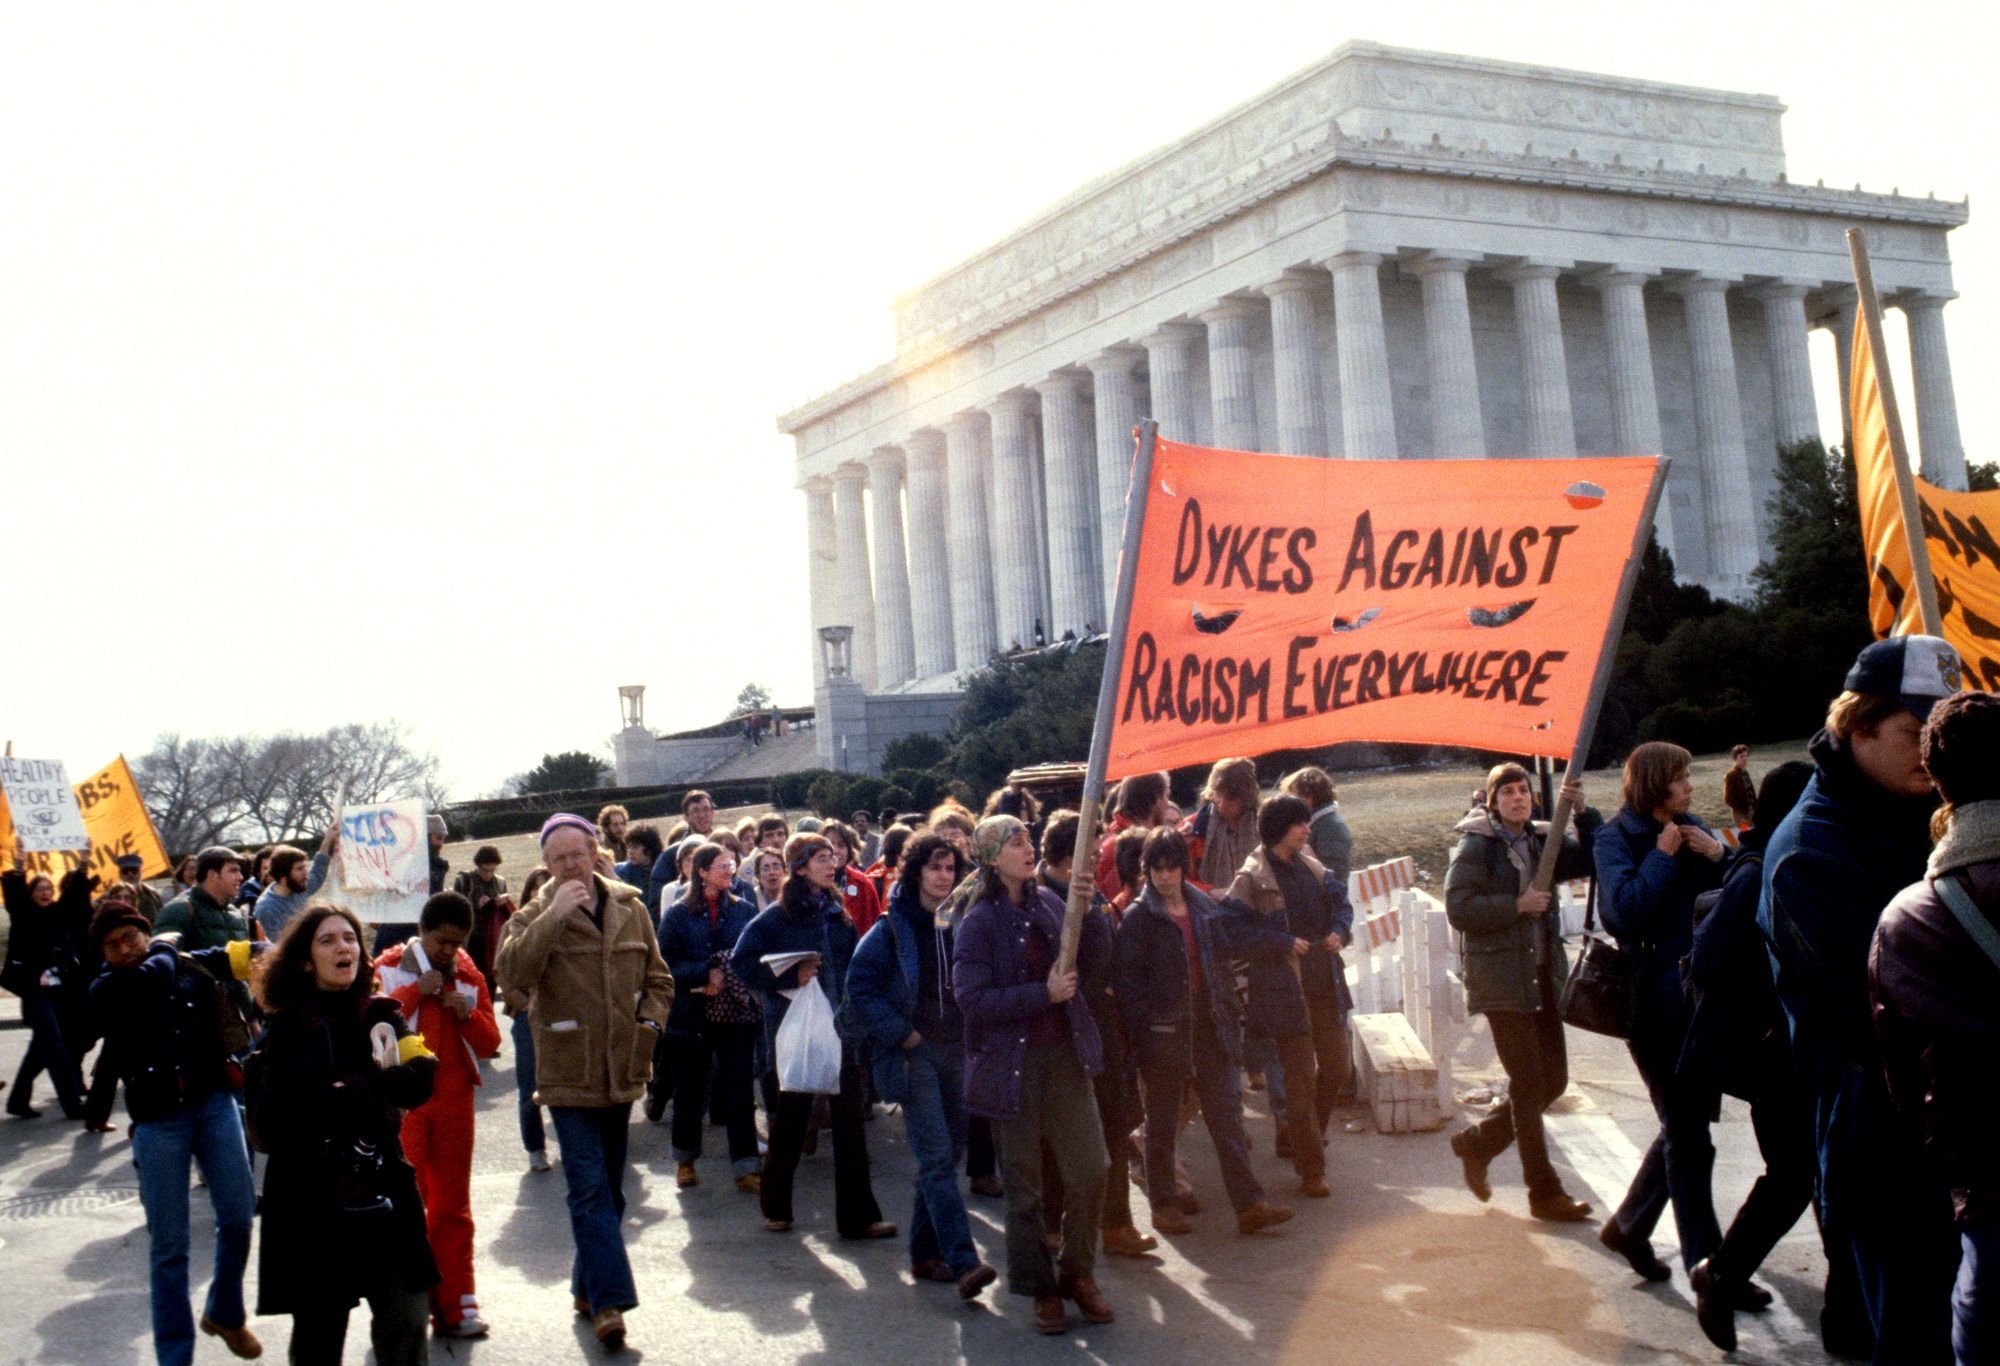 Counter-inaugural protest against Reagan, 1981, Washington, DC